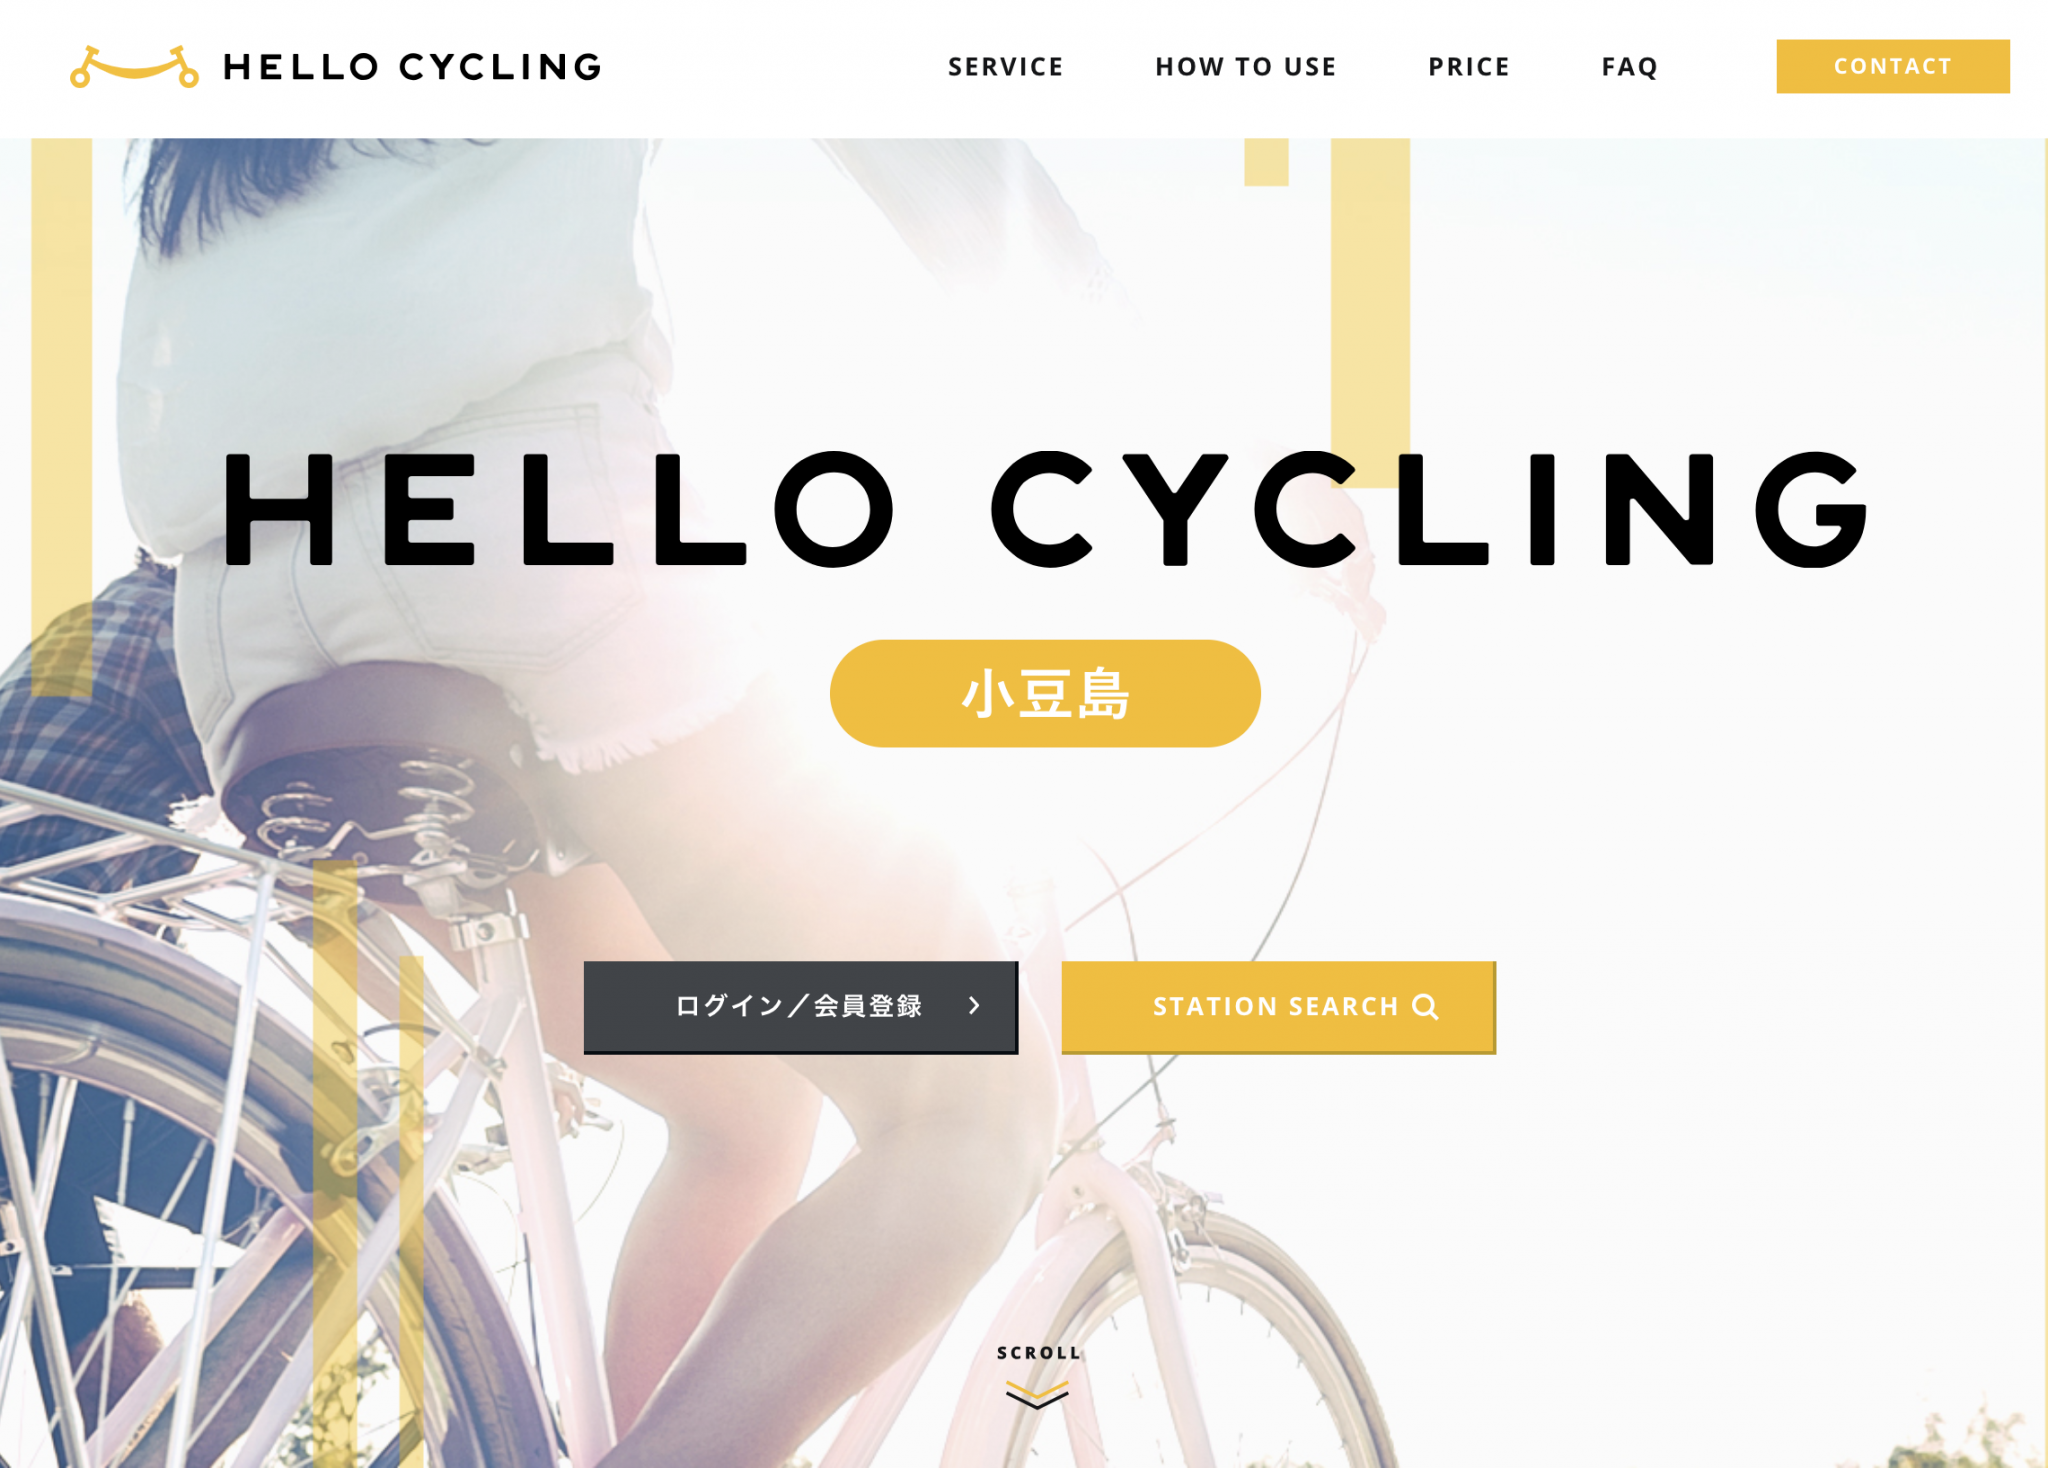 HELLO CYCLING 小豆島